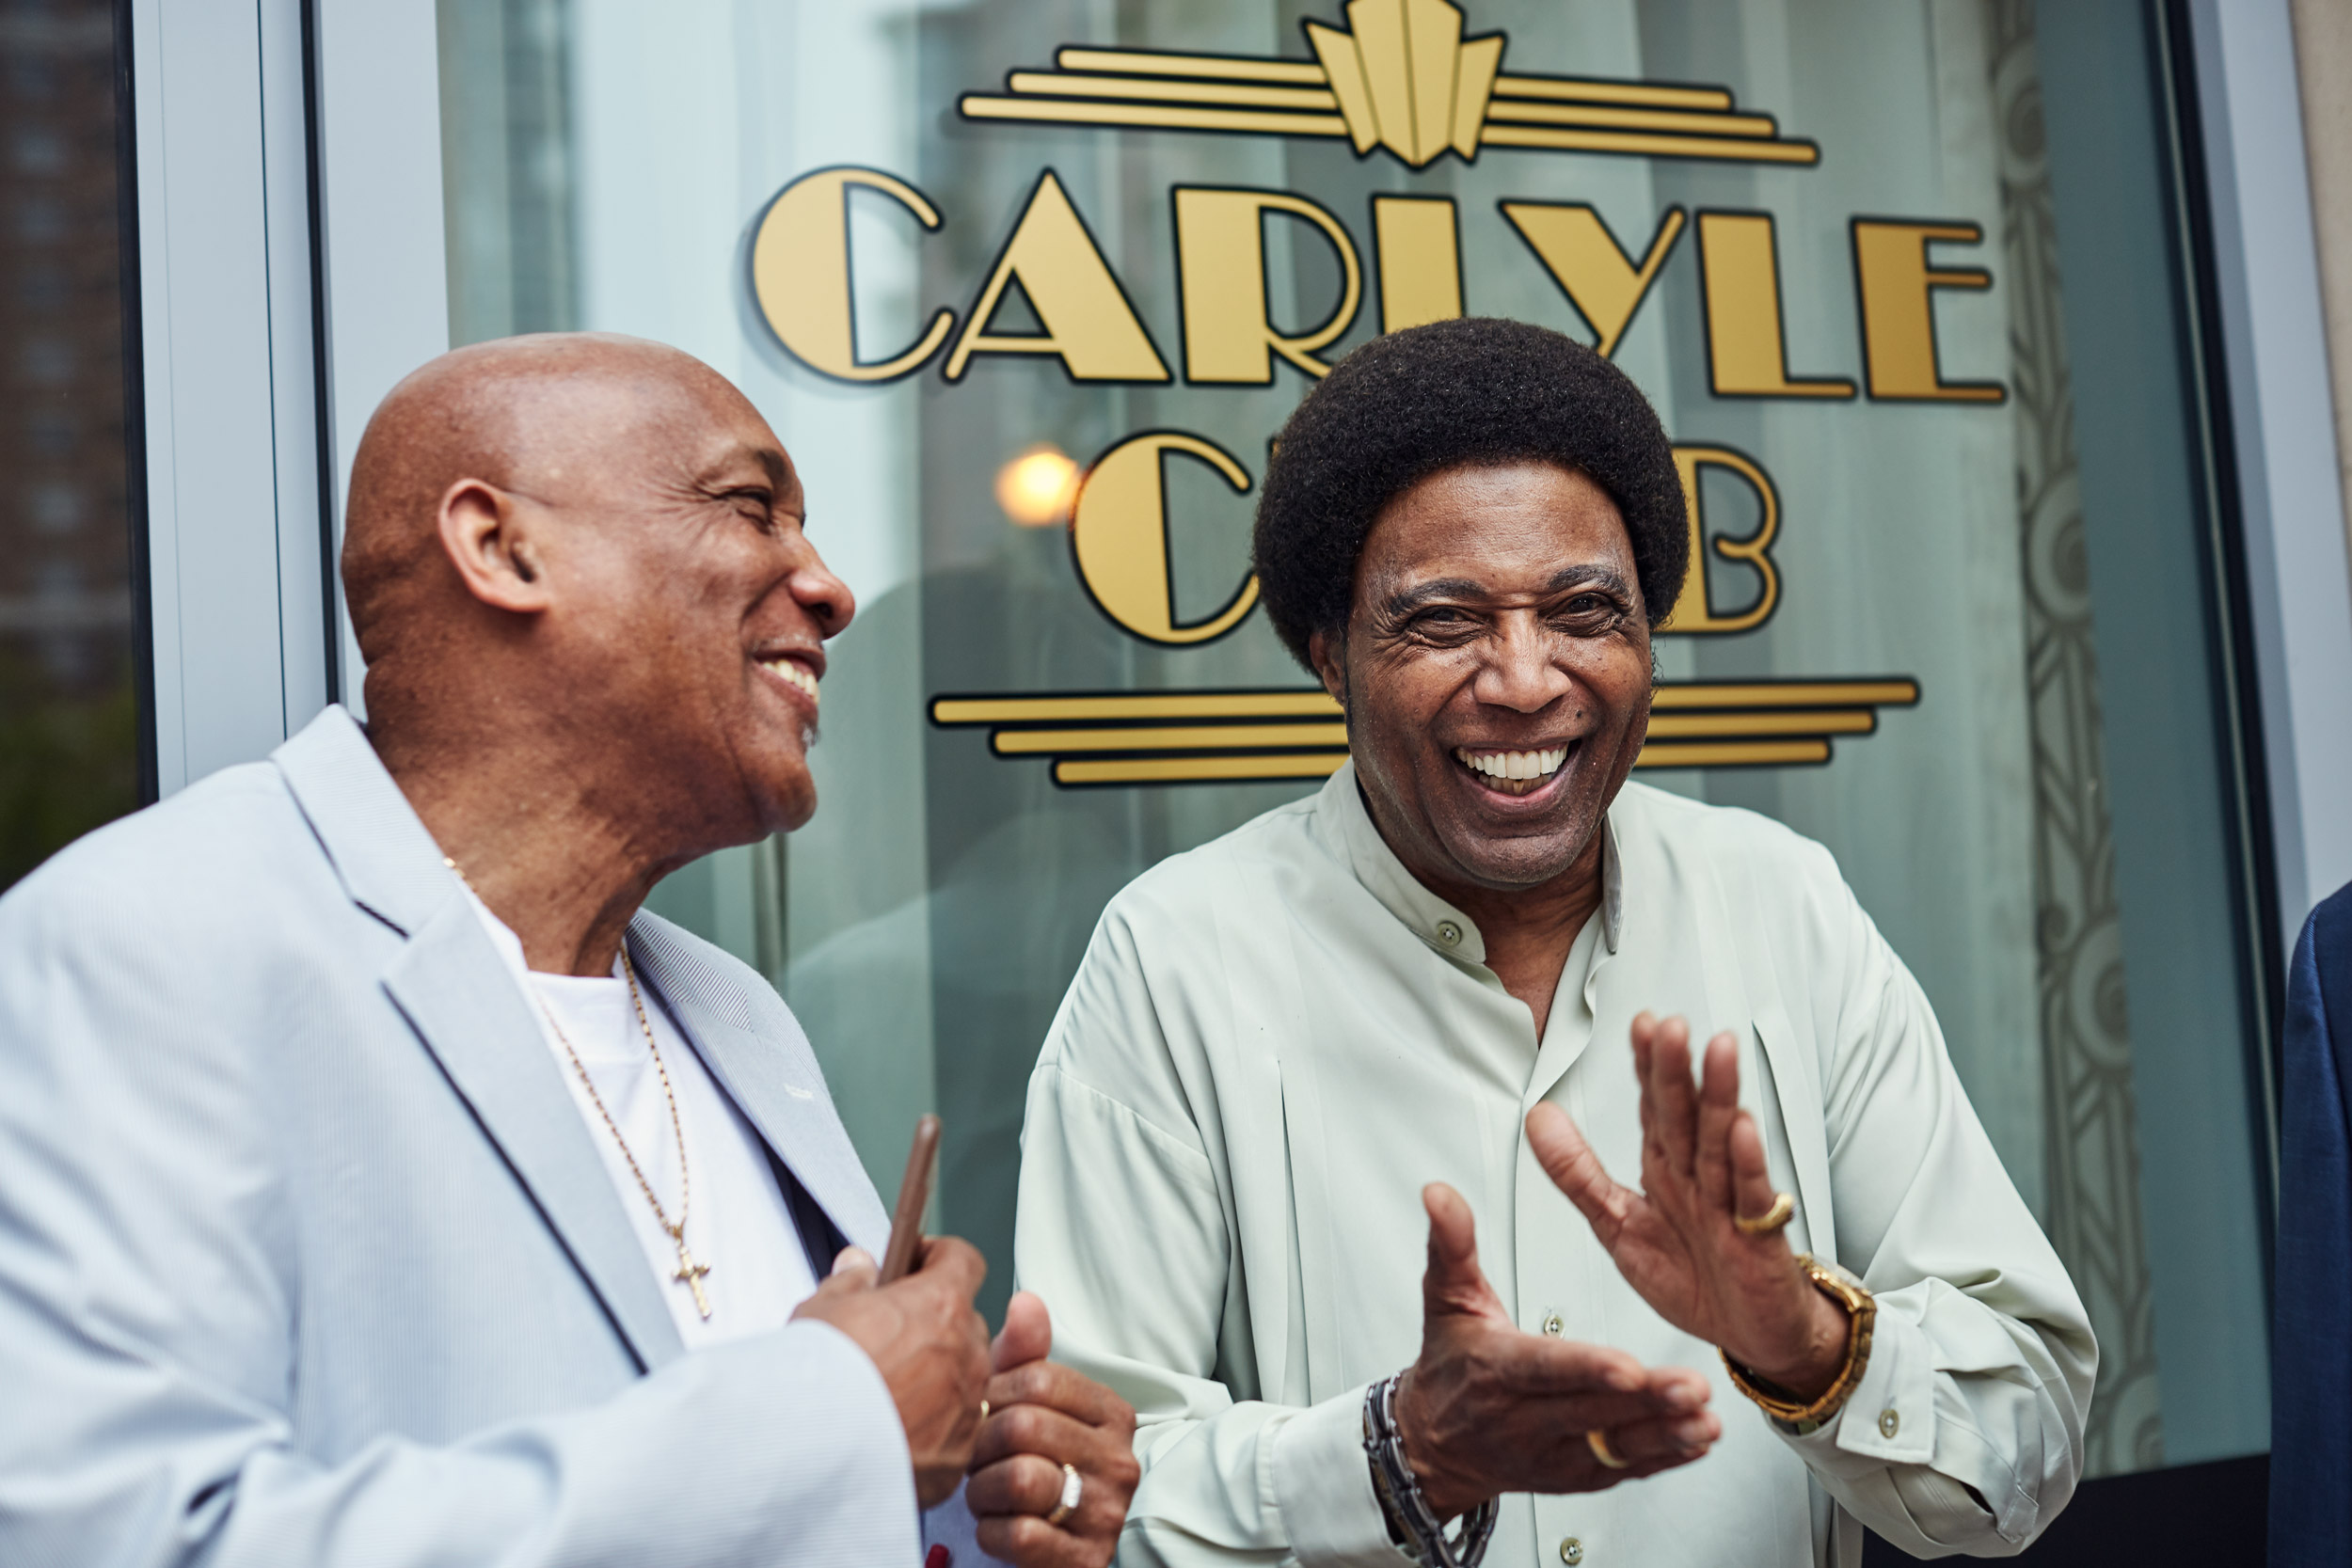 Leonard Coleman & Blunt at The Carlyle Club, washington dc portrait photography